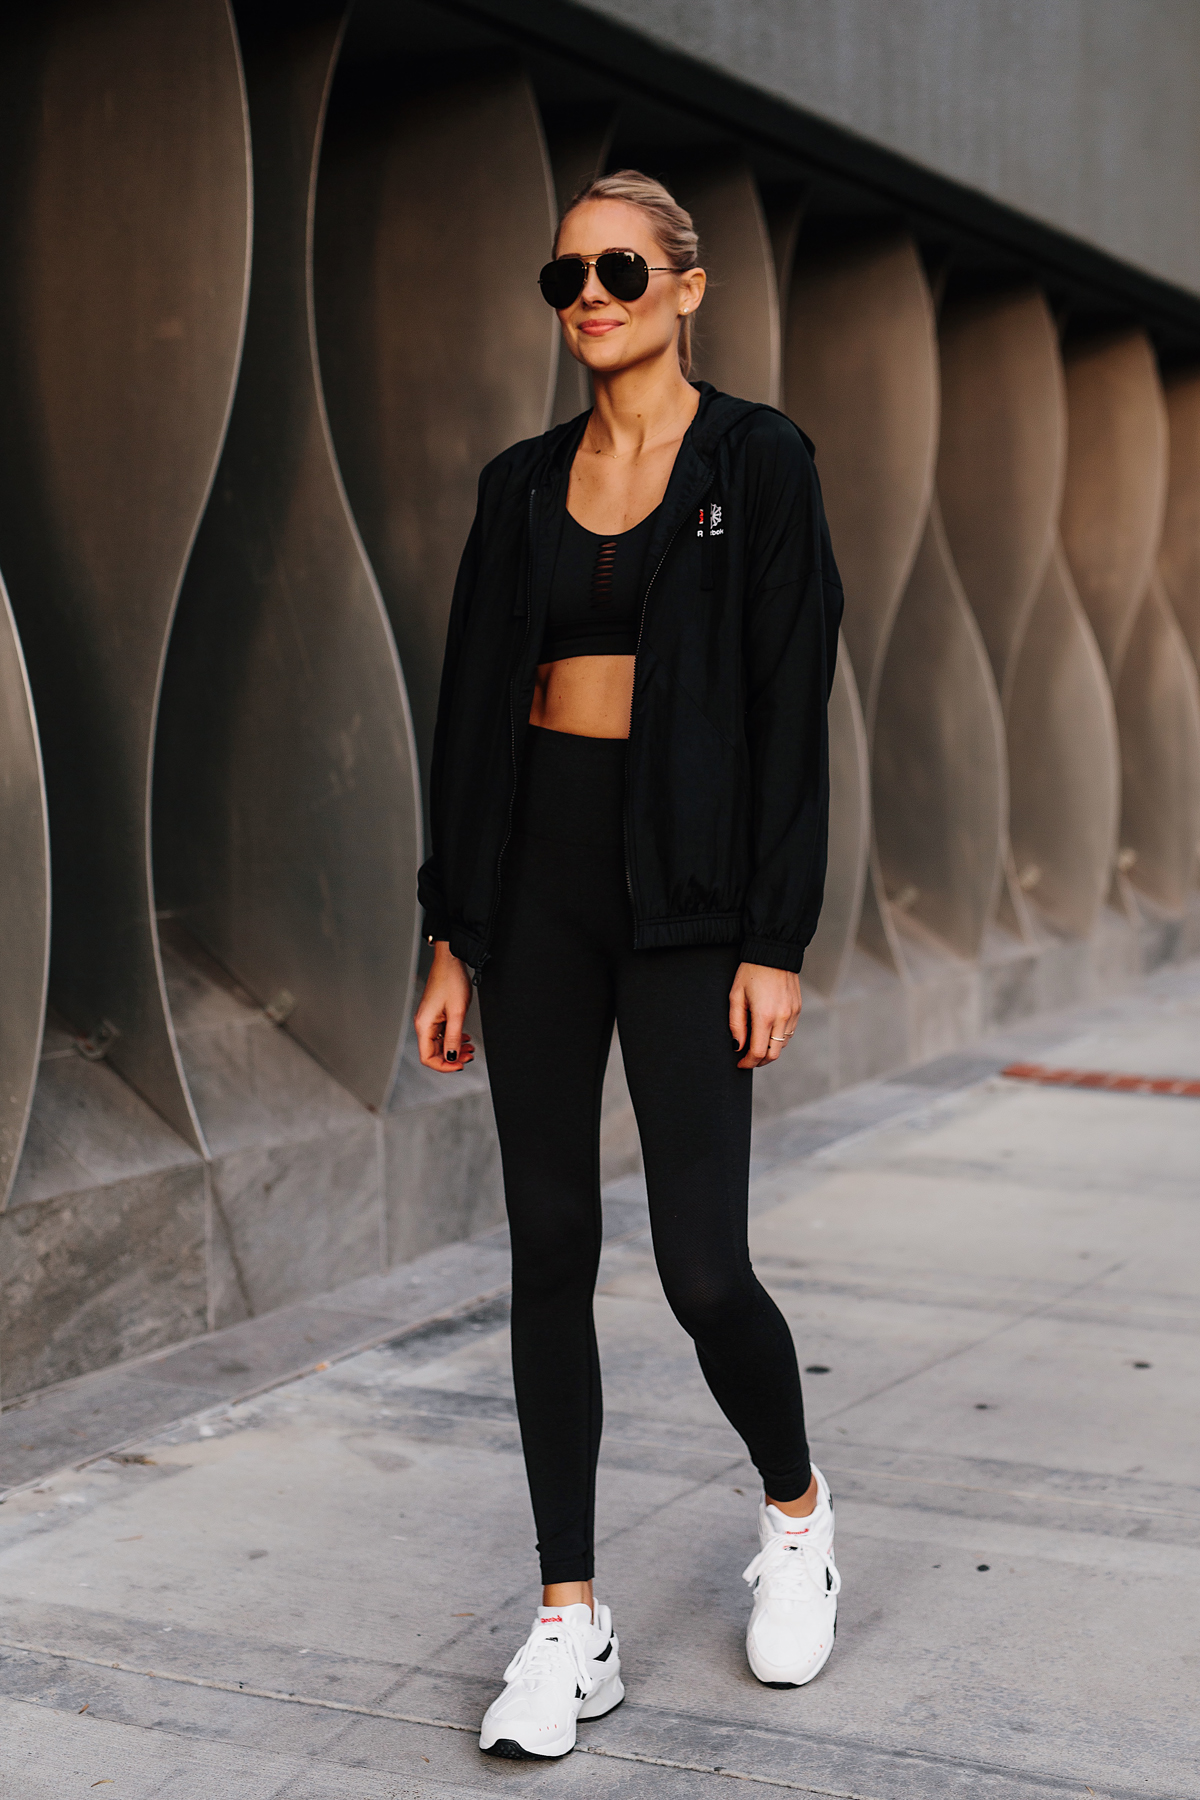 Blonde Woman Wearing Reebok Black Windbreaker Reebok Black Sports Bra Reebok Black Leggings Reebok Aztrek Sneakers White Fashion Jackson San Diego Fashion Blogger Activewear Street Style